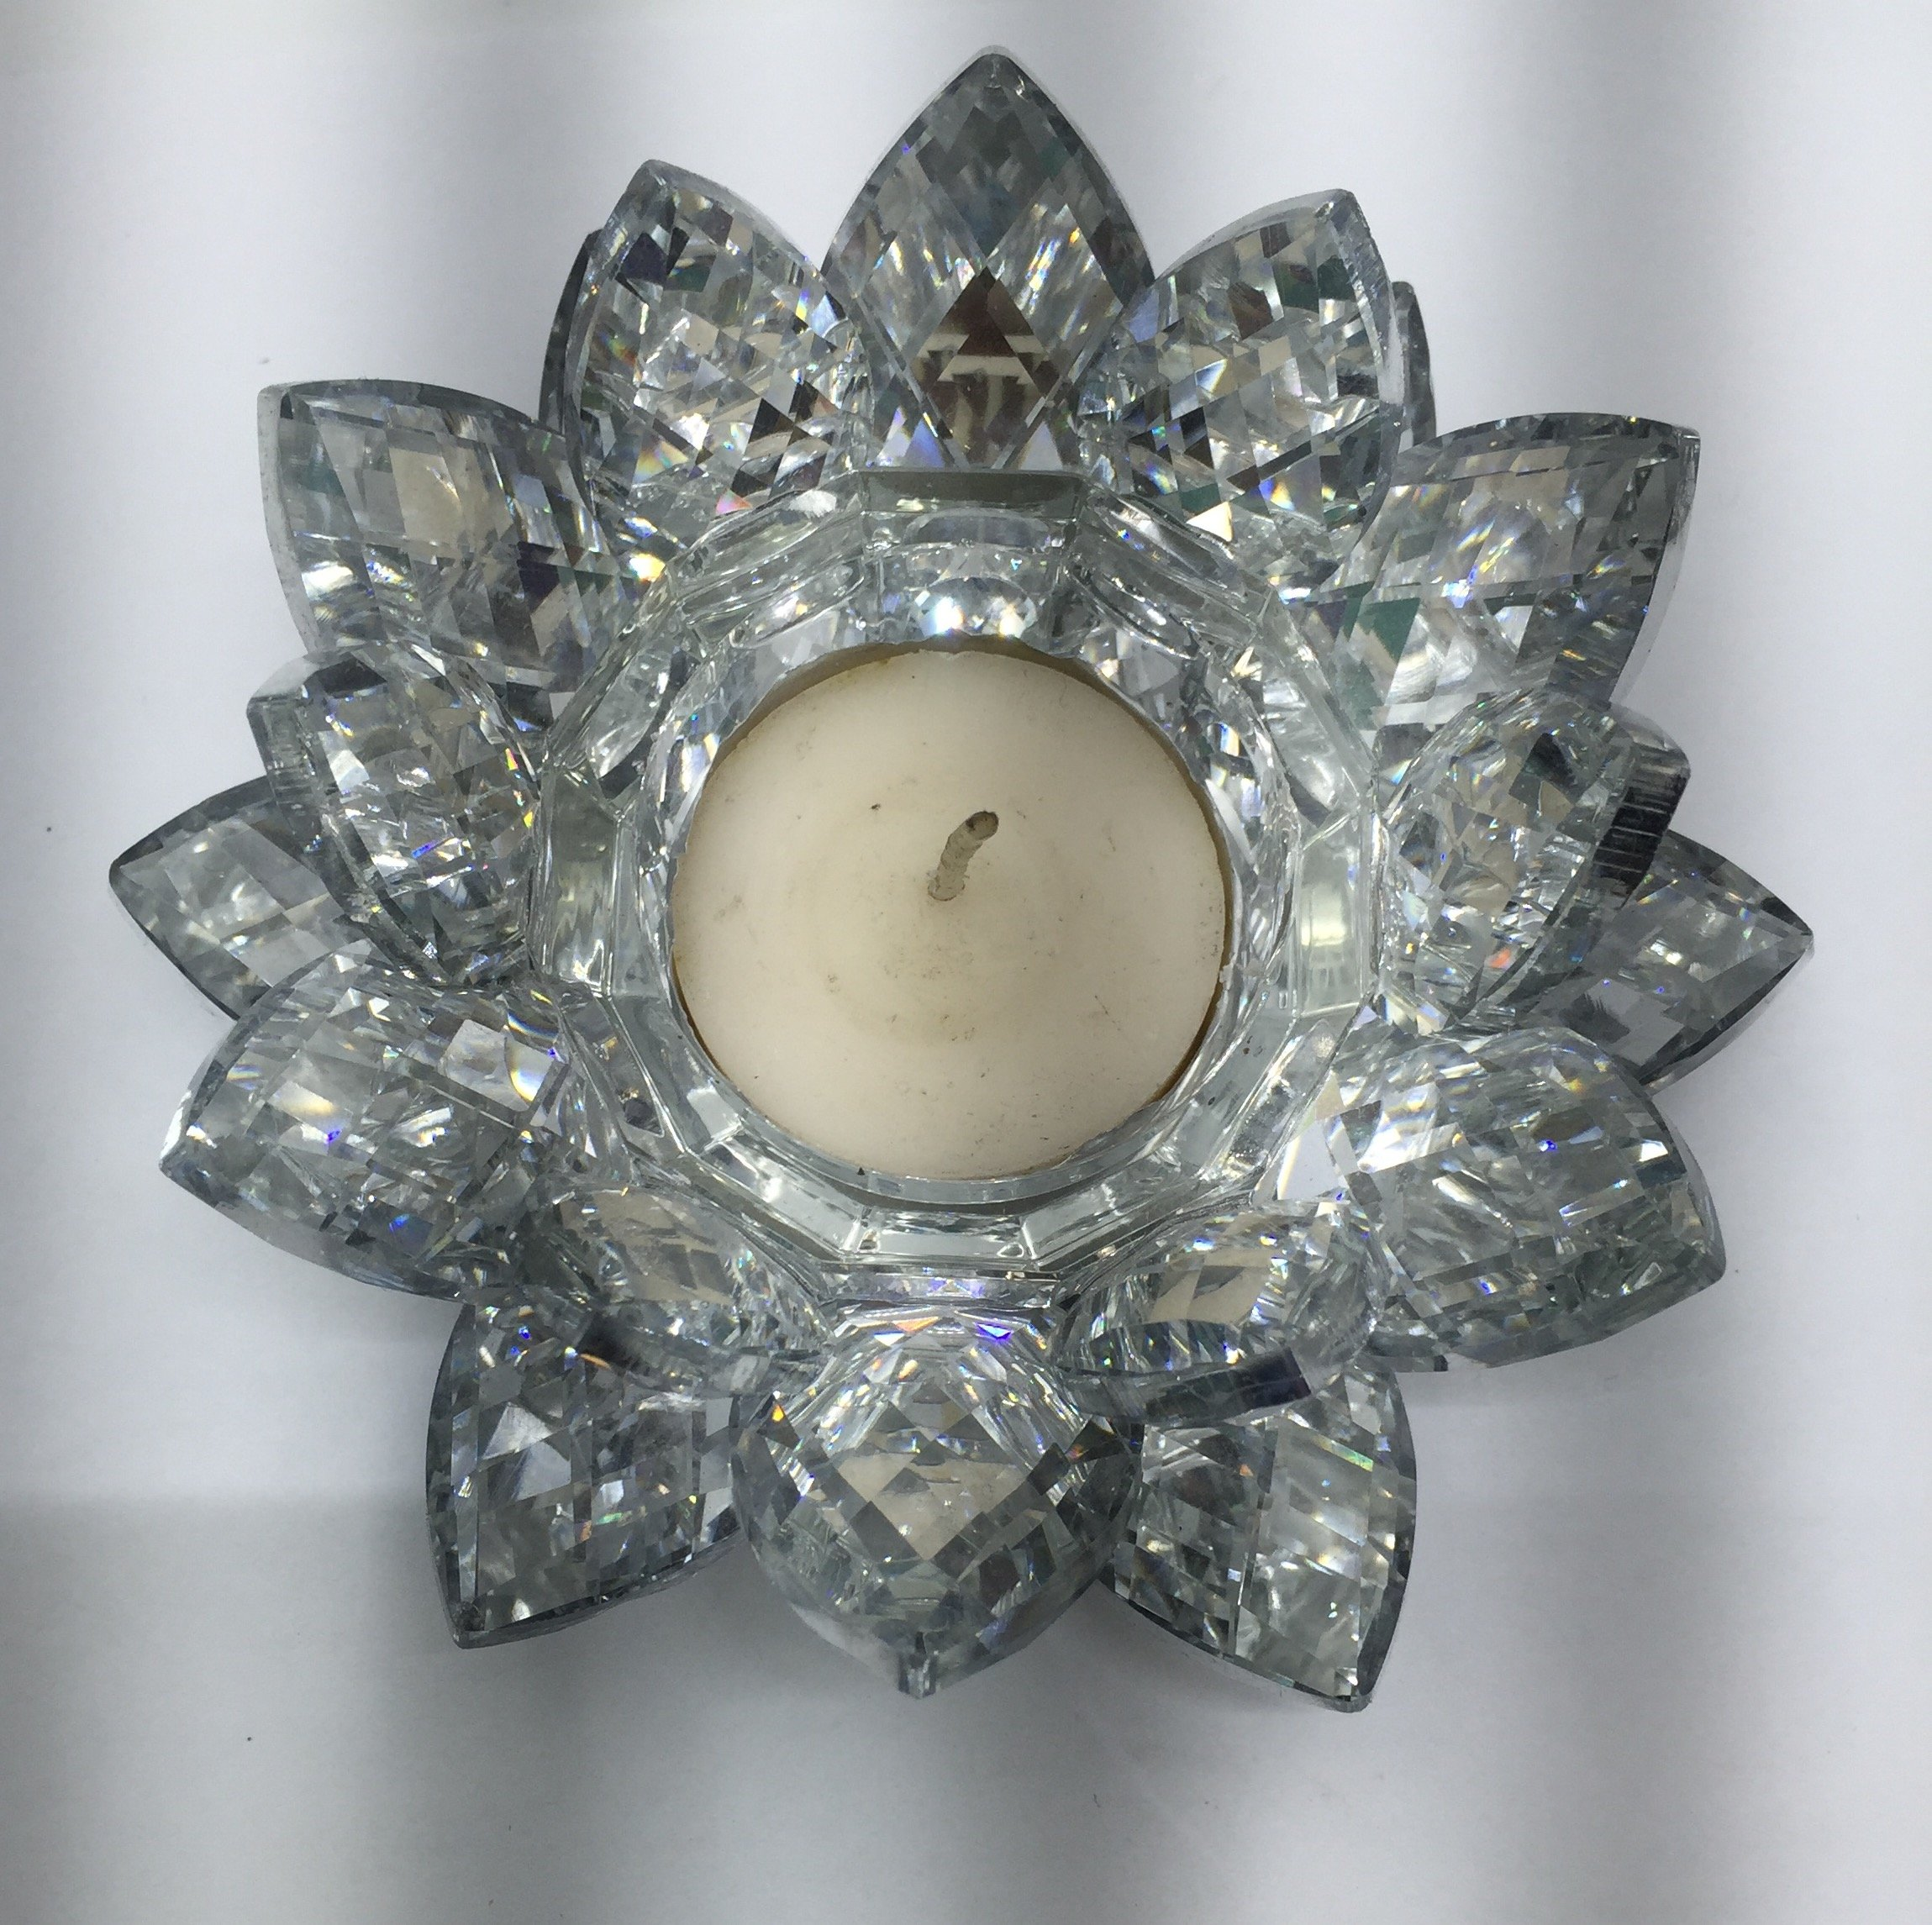 SunRise 4.5 inch Centerpieces Crystal Lotus Candle Holder Collectible Figurine Crystal (Silver) by SunRise (Image #4)